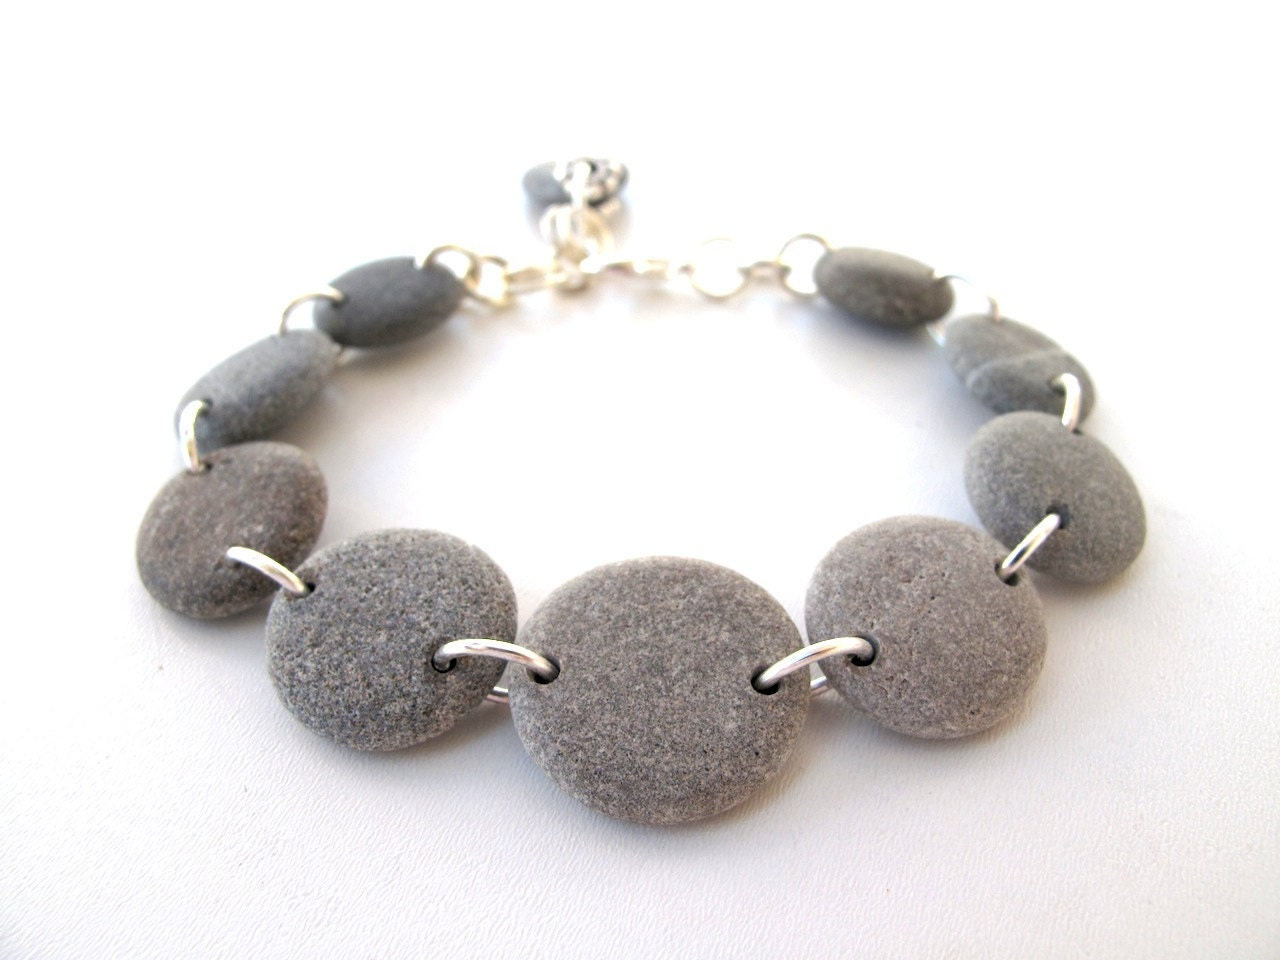 Beach Stone Jewelry - VUOLA Bracelet by StoneAlone - Beach Pebble Bracelet, Rock Jewelry - StoneAlone